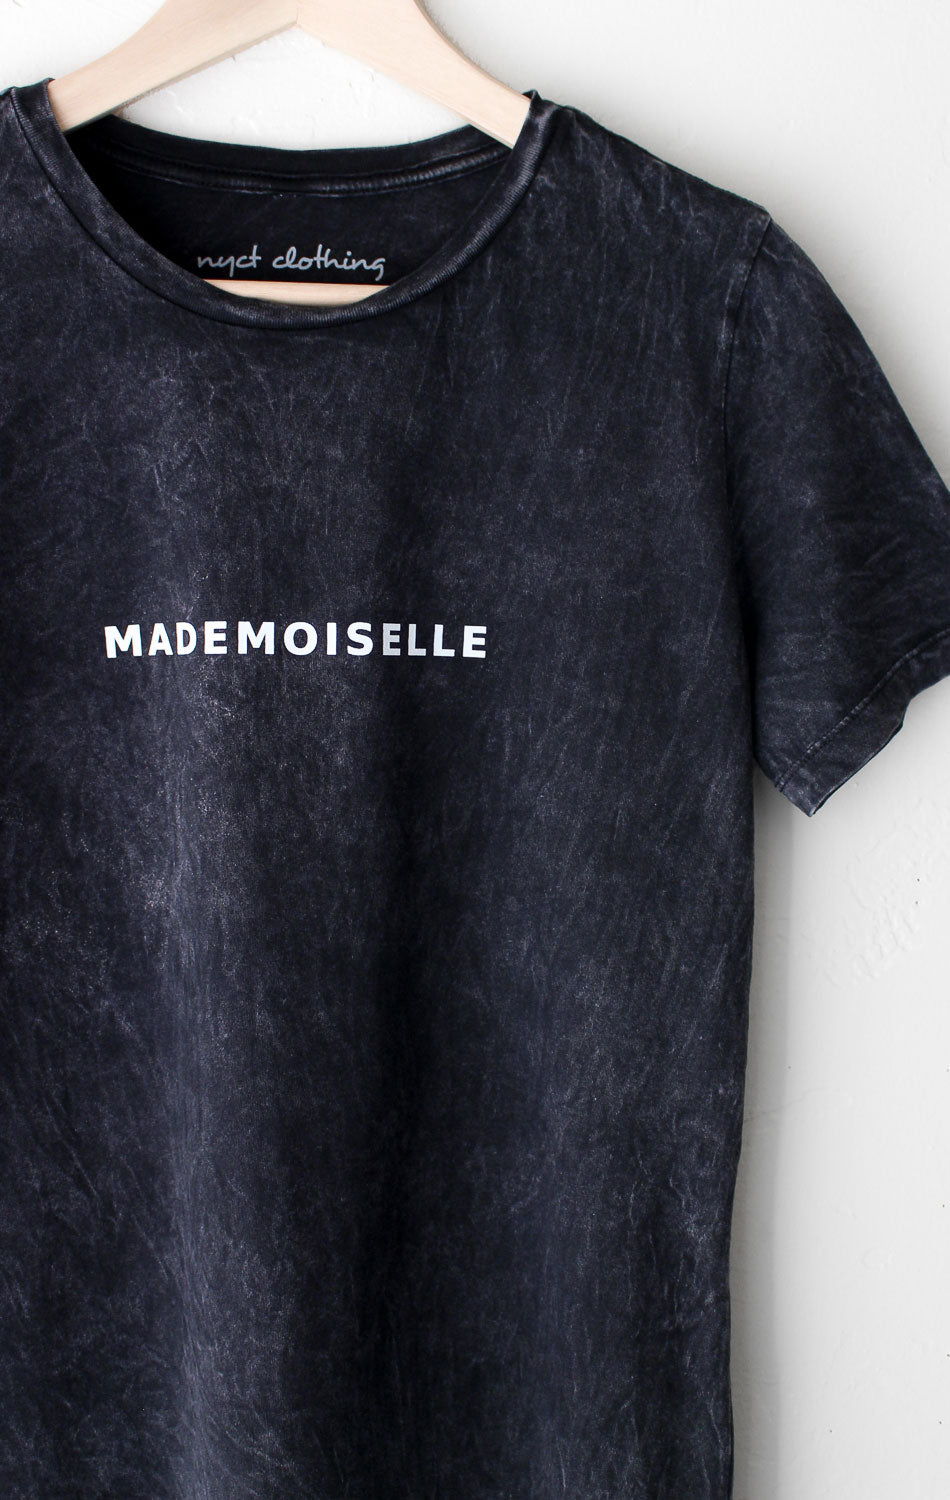 NYCT Clothing Mademoiselle Relaxed Tee - Acid Wash